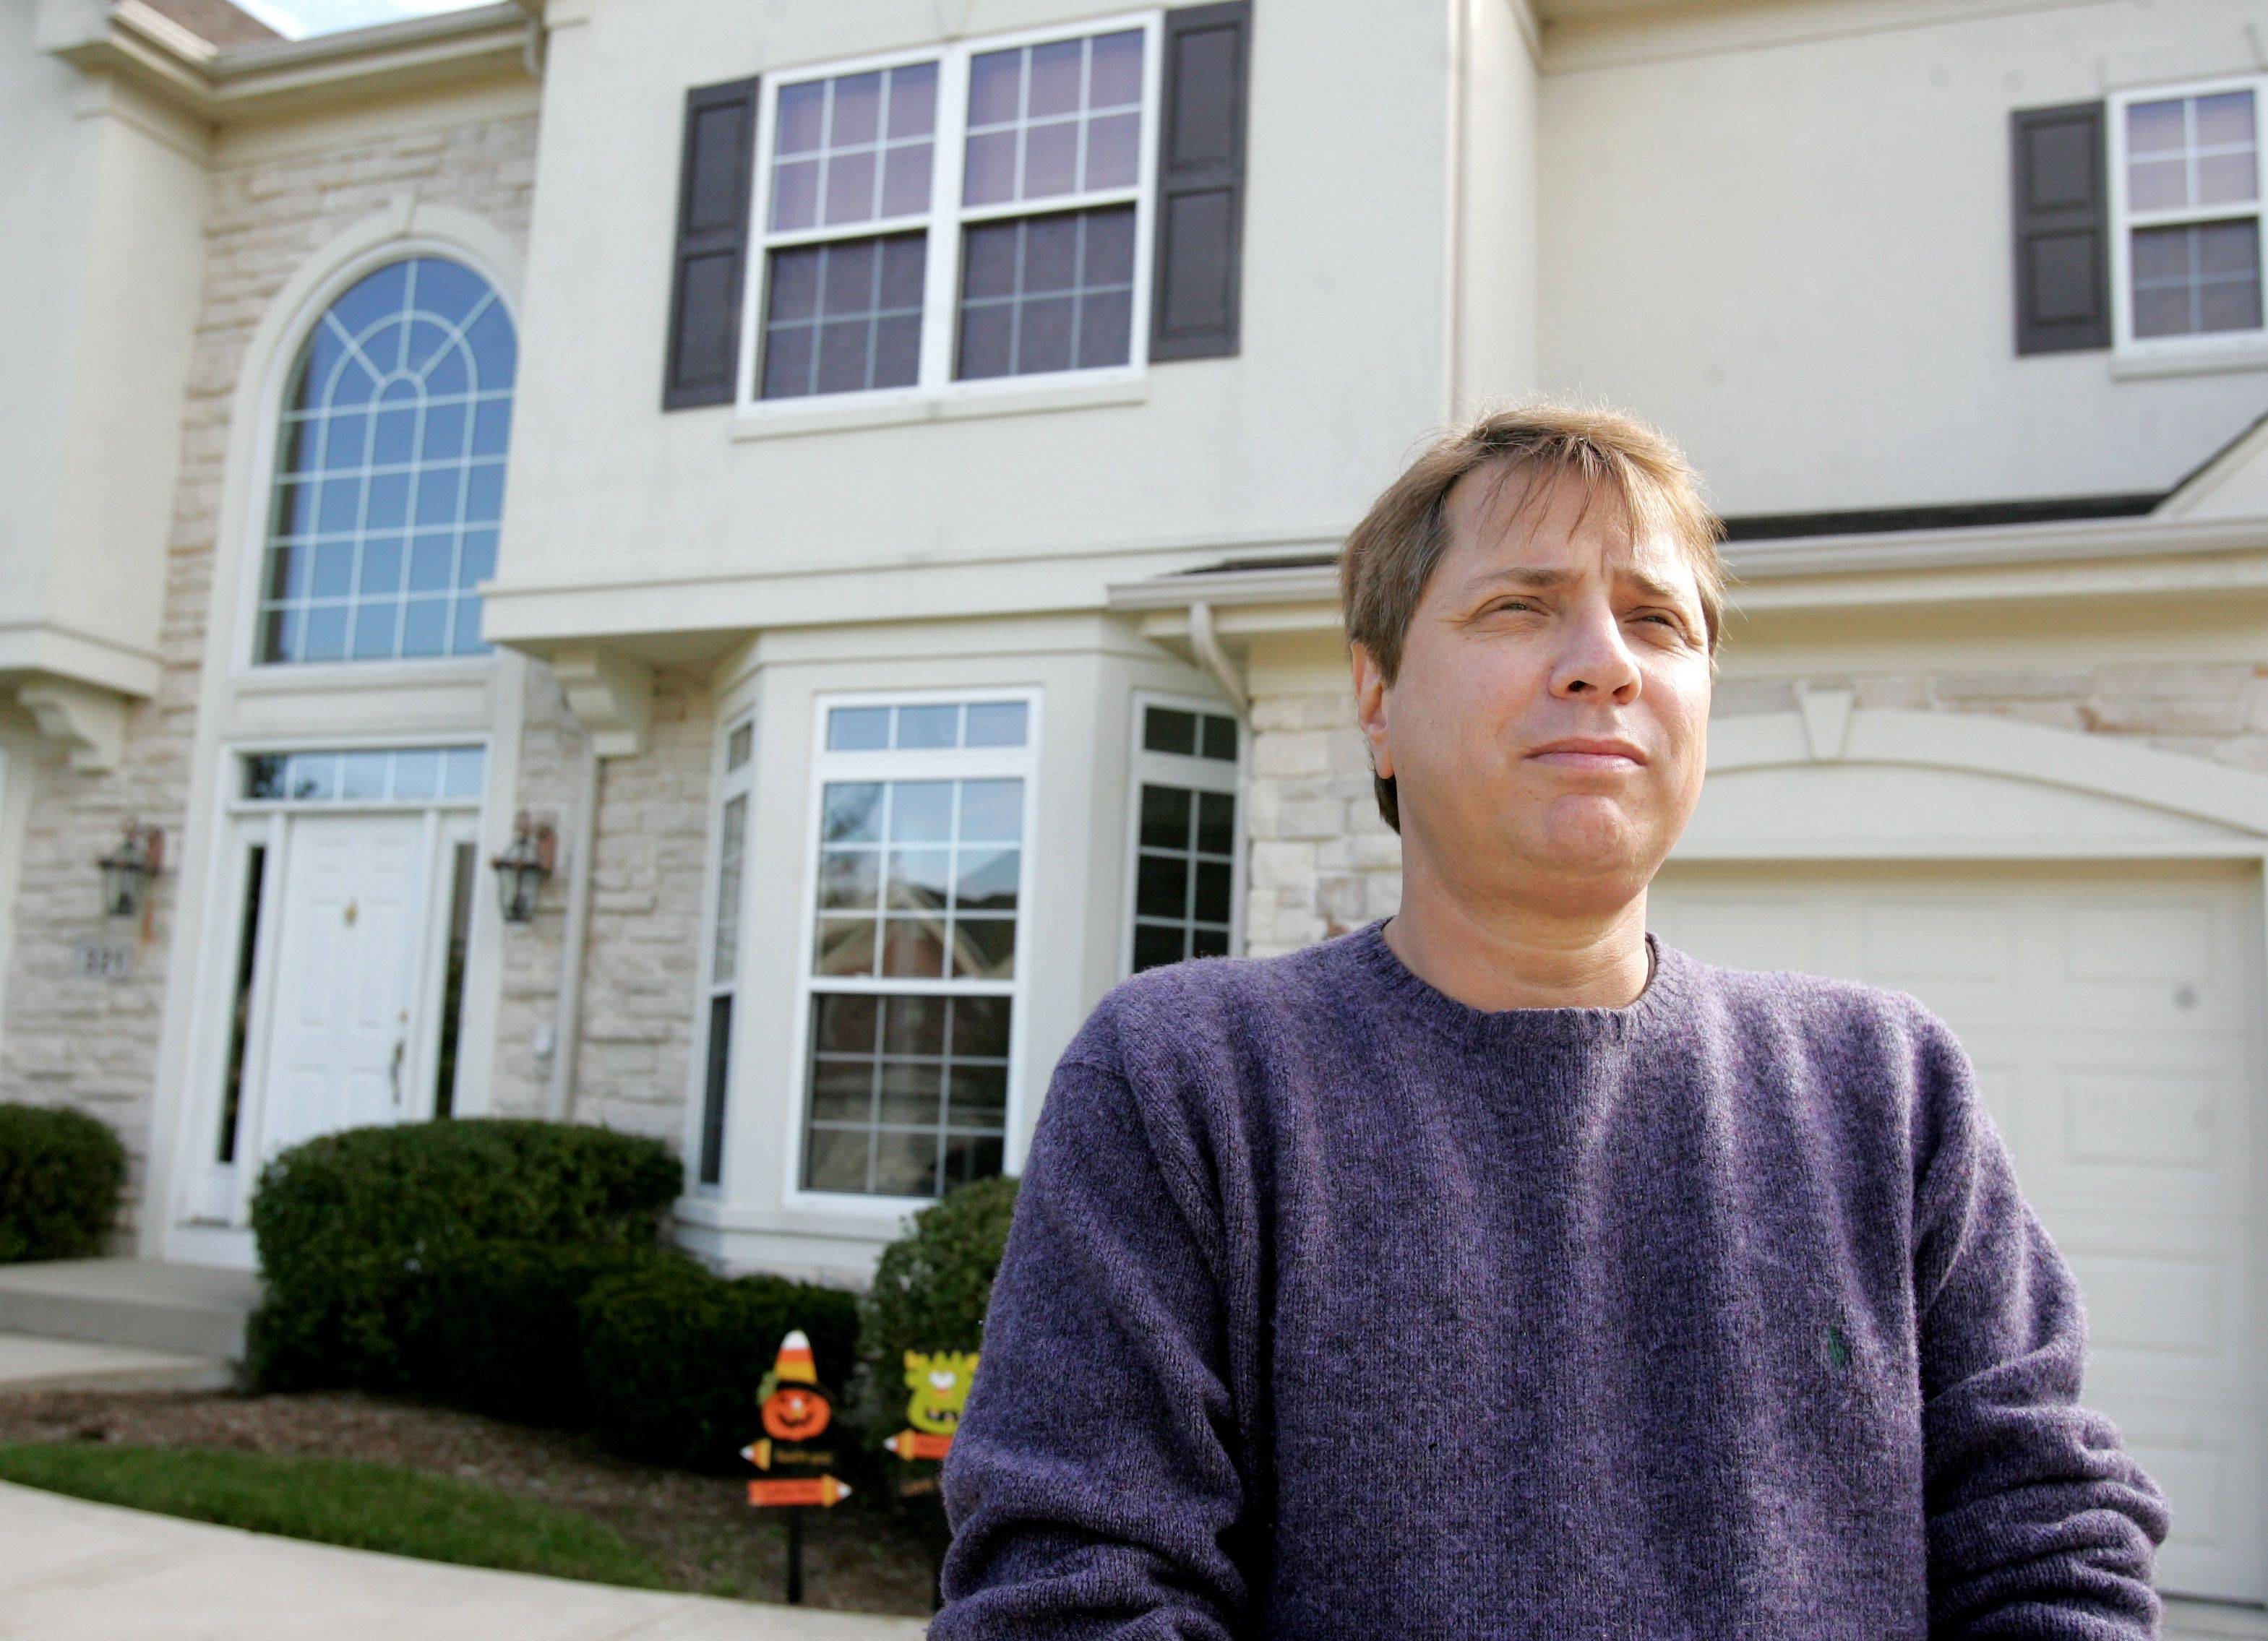 A divorce and medical disability helped push Michael Slowik's debt to $140,000. He filed for bankruptcy but is fighting to keep his Bloomingdale home.